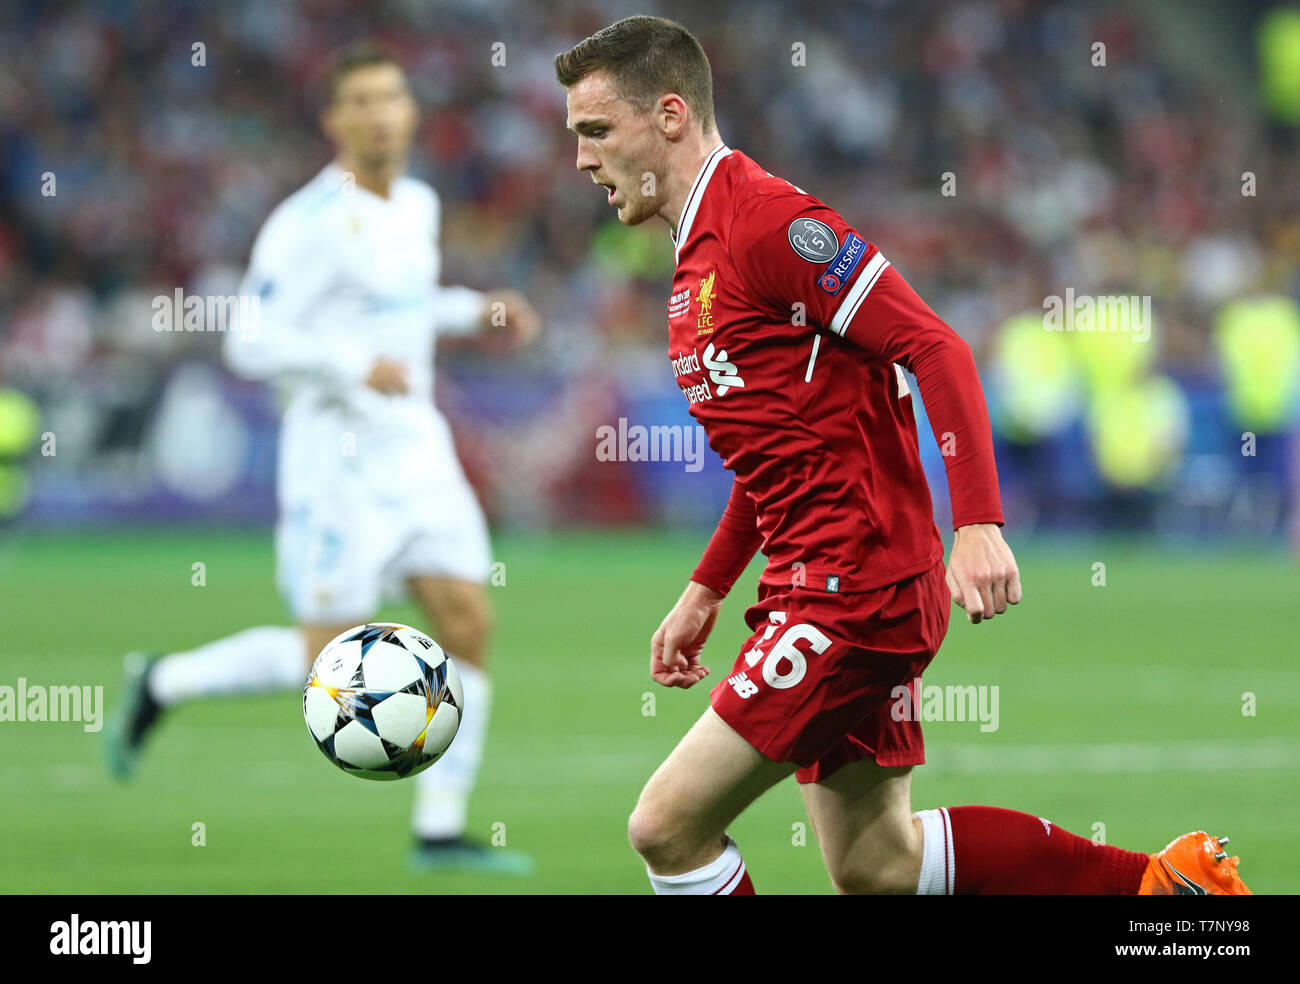 Andy Robertson of Liverpool in action during the UEFA Champions League Final 2018 game against Real Madrid - Stock Image